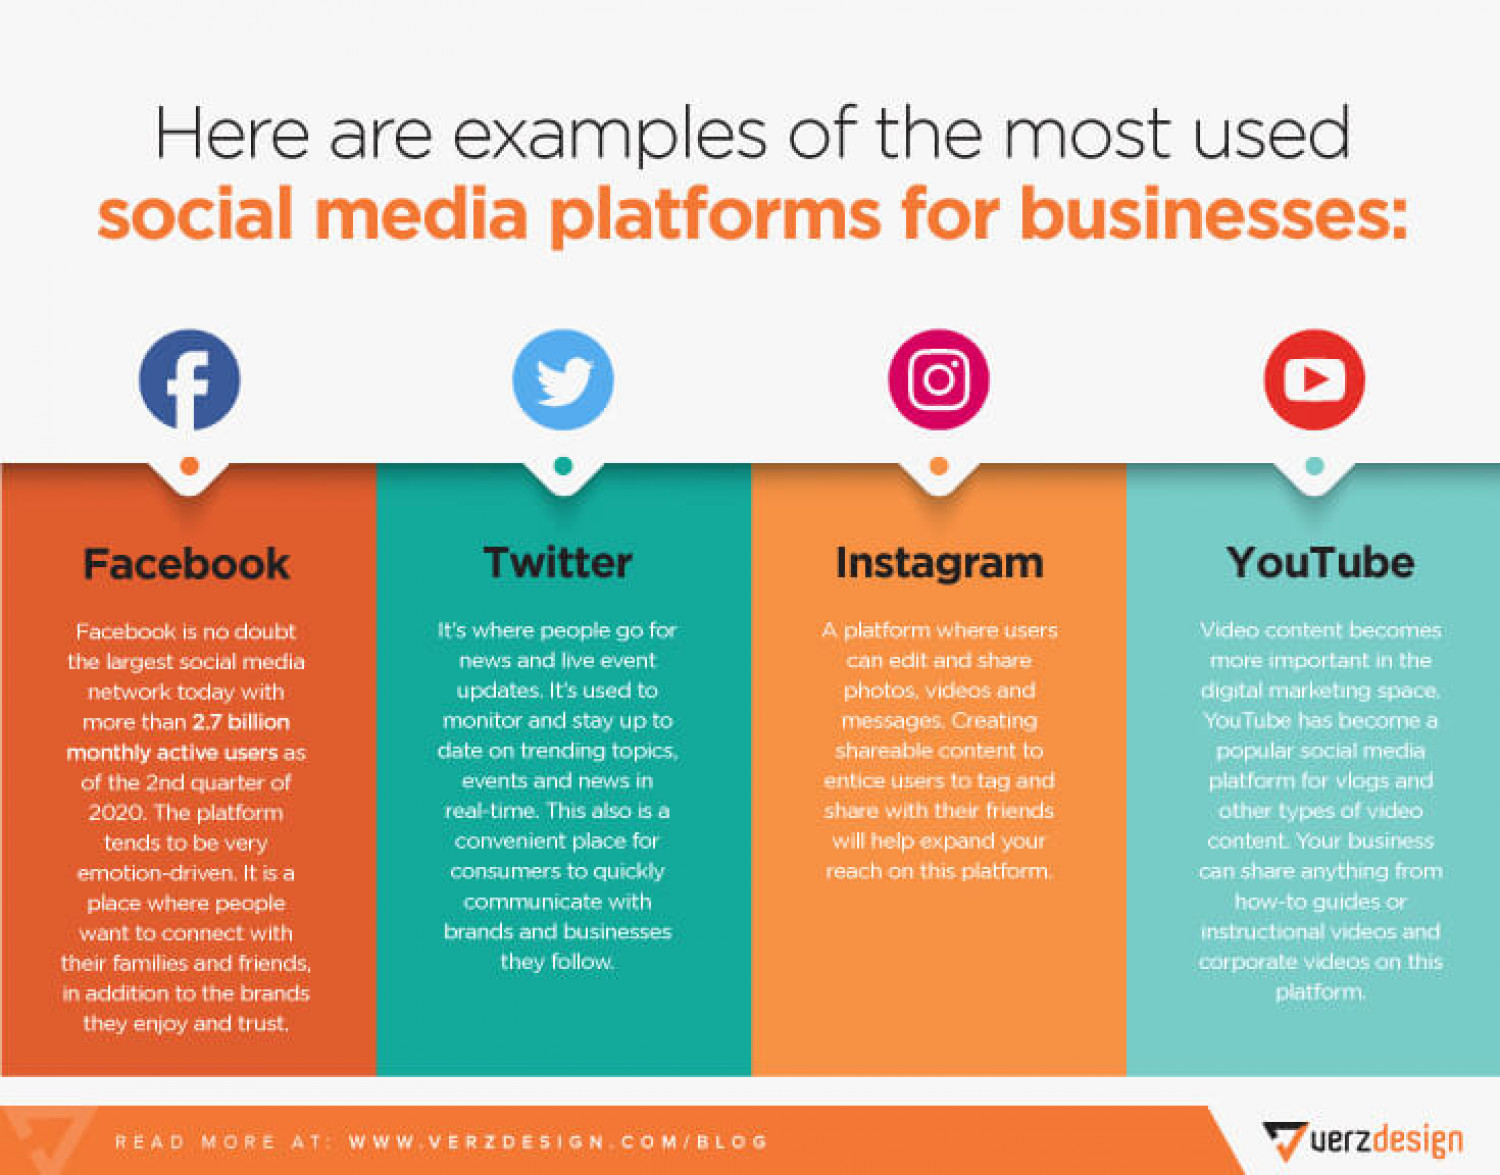 Most Used Social Media Platforms for Businesses Infographic